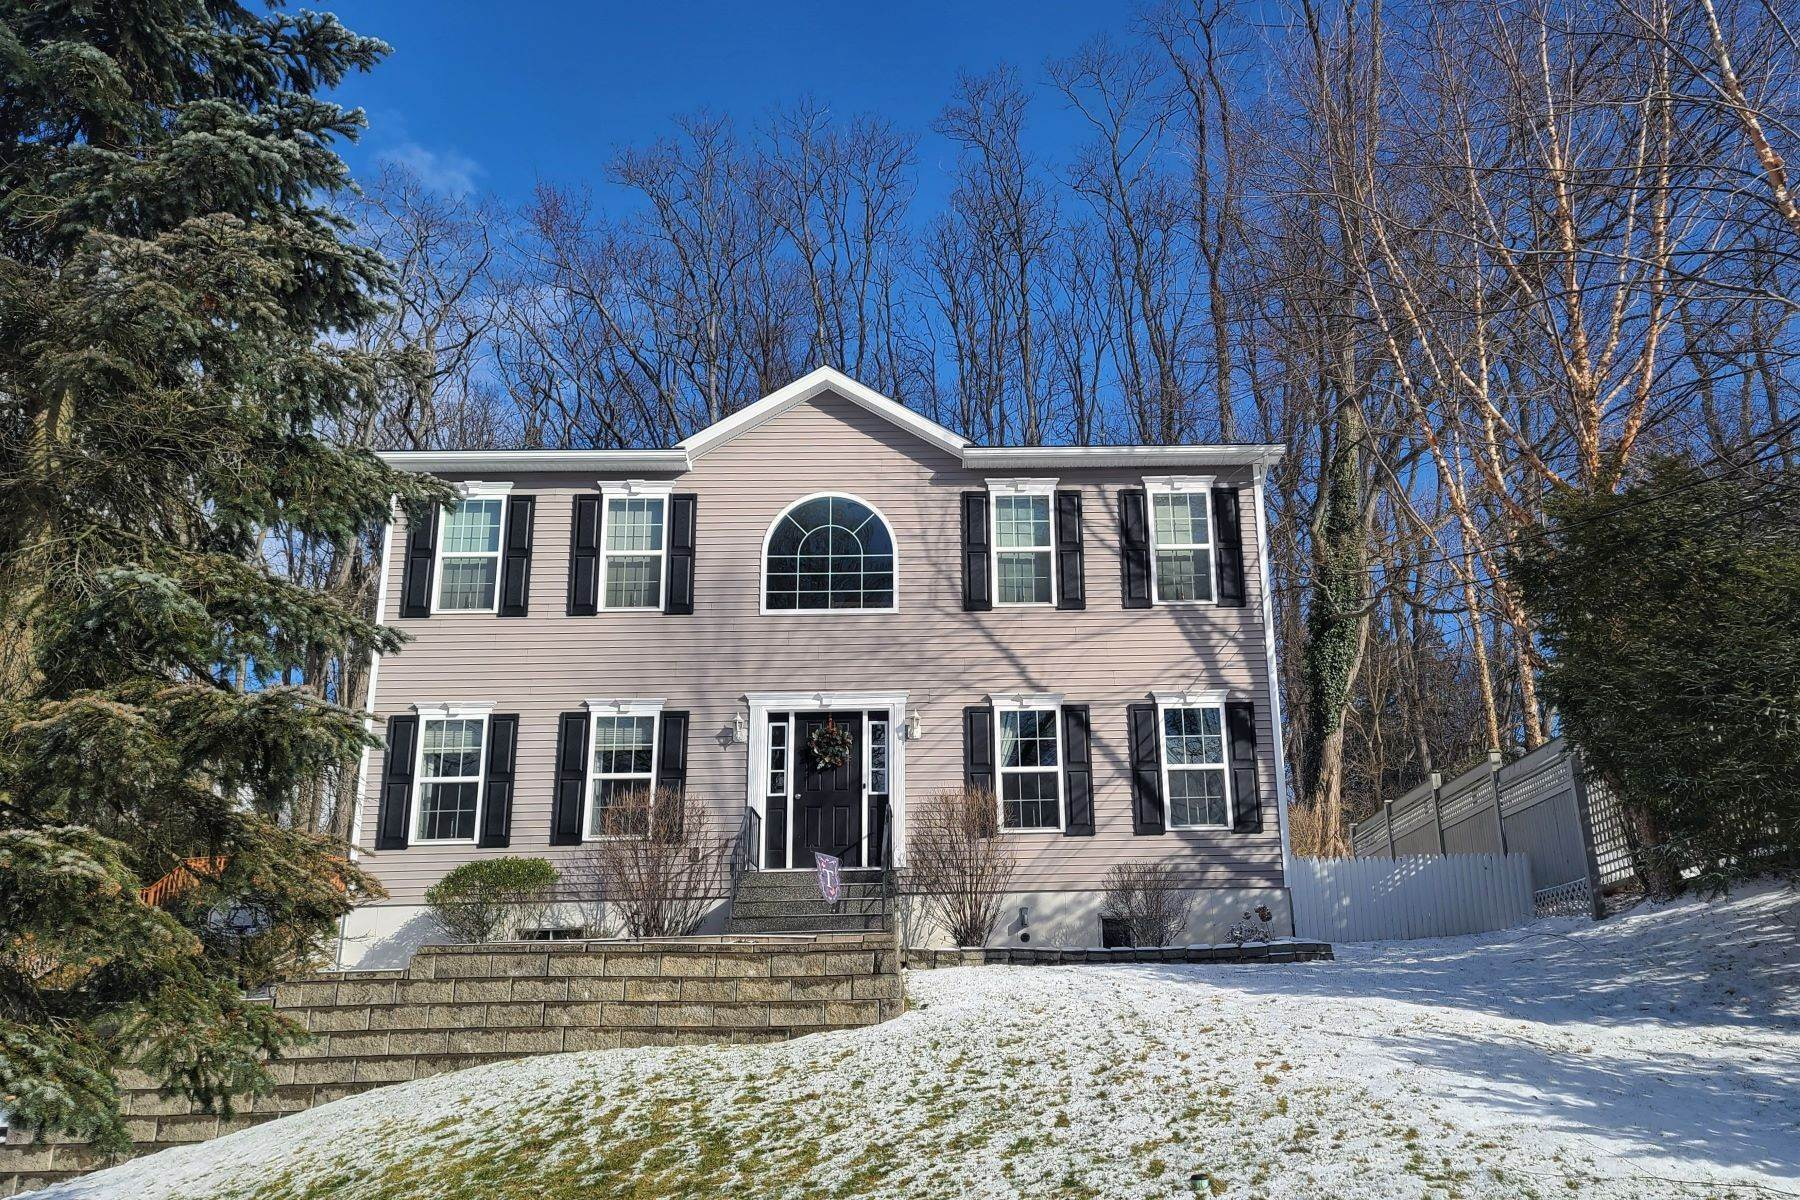 Single Family Homes for Sale at 21 Mountain View Avenue, East Greenbush, NY 12061 21 Mountain View Avenue East Greenbush, New York 12061 United States